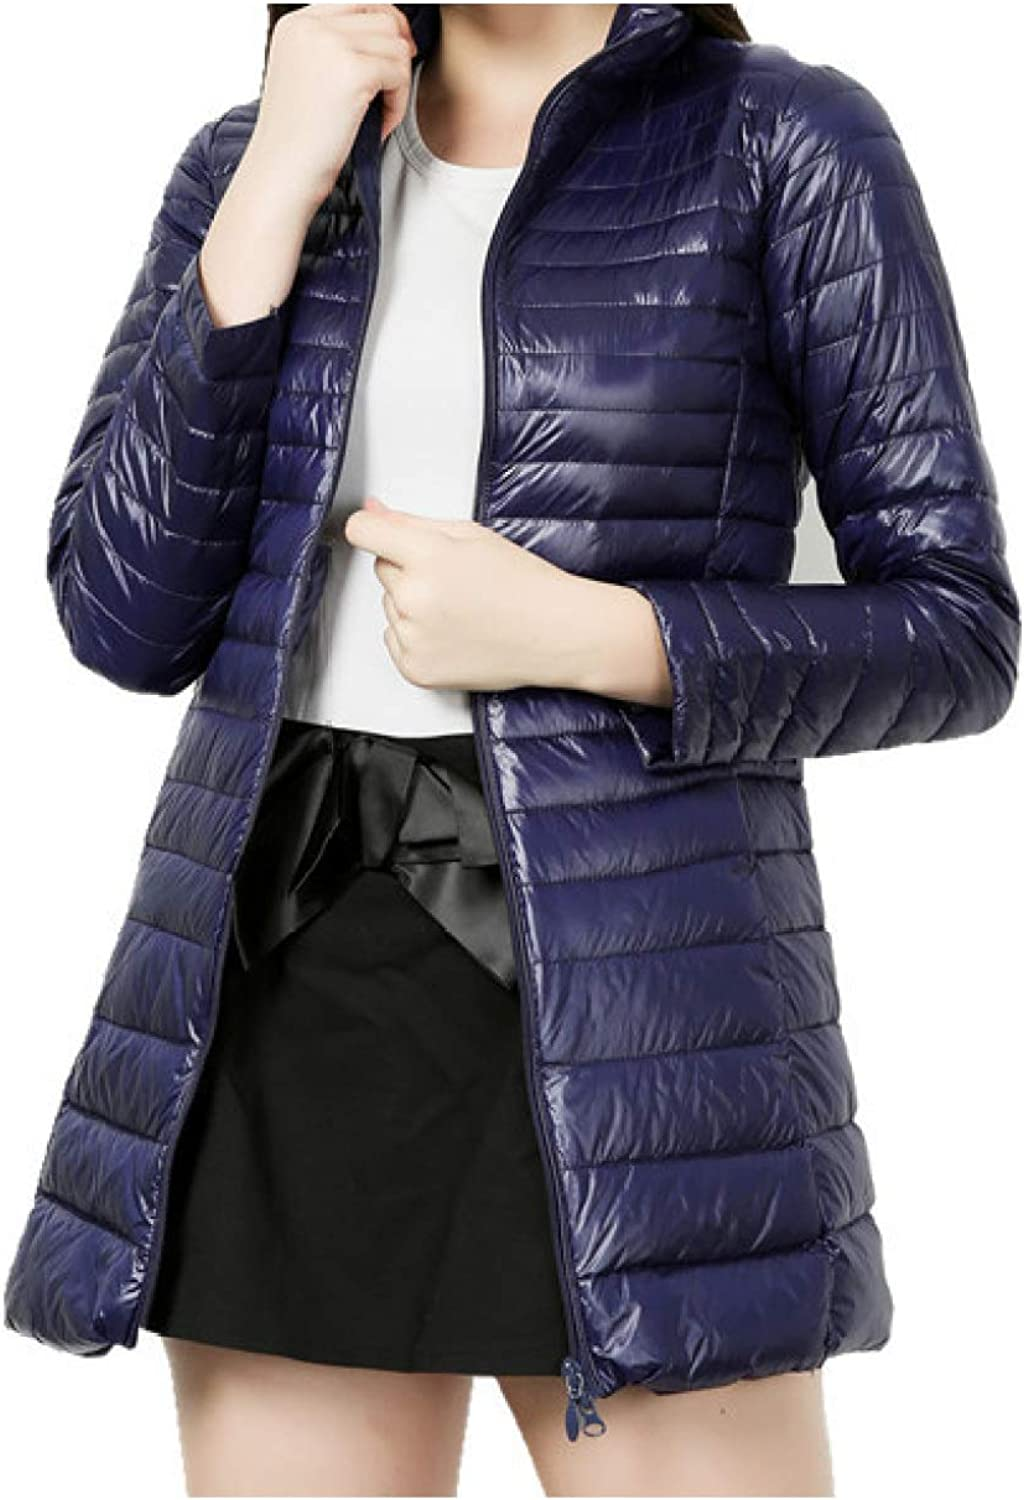 Women's Thickened Padding Jacket Women's Quilted Outerwear Coat with Pocket